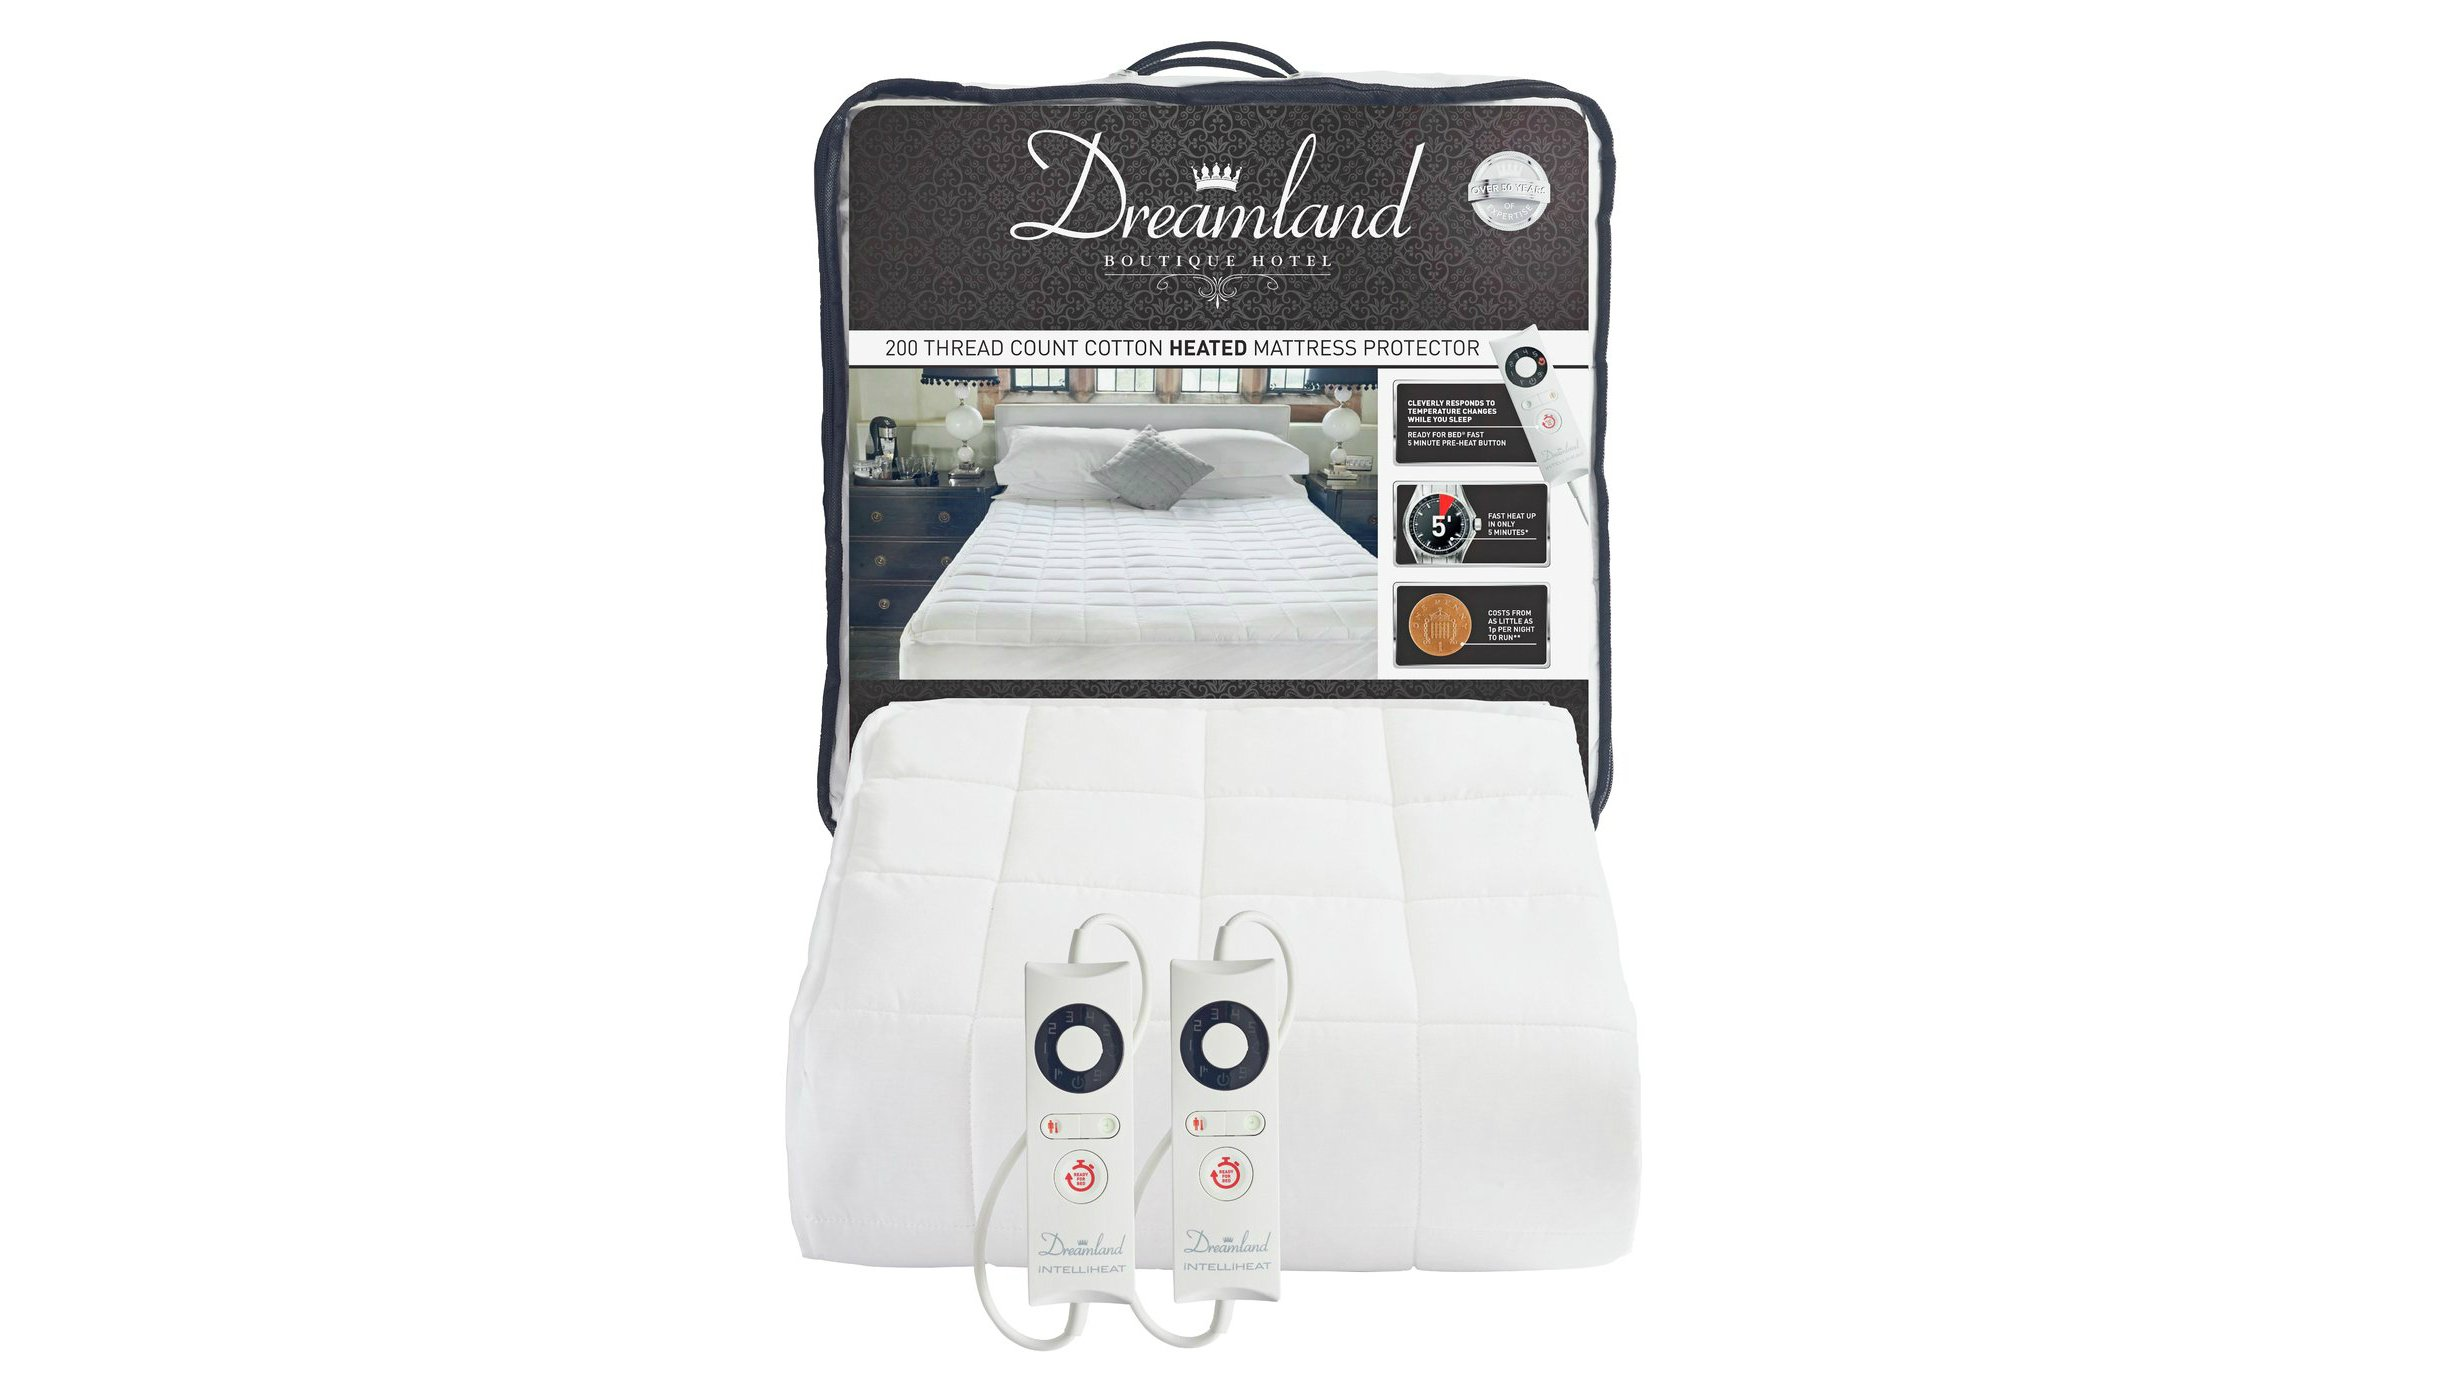 Best Electric Blanket The Top Mattress Covers Fleeces Dunlopillo Carriol 180 200 If Youre Looking For A Little Extra Luxury And Comfort Dreamlands Boutique Gives You Thread Count Cotton Percale